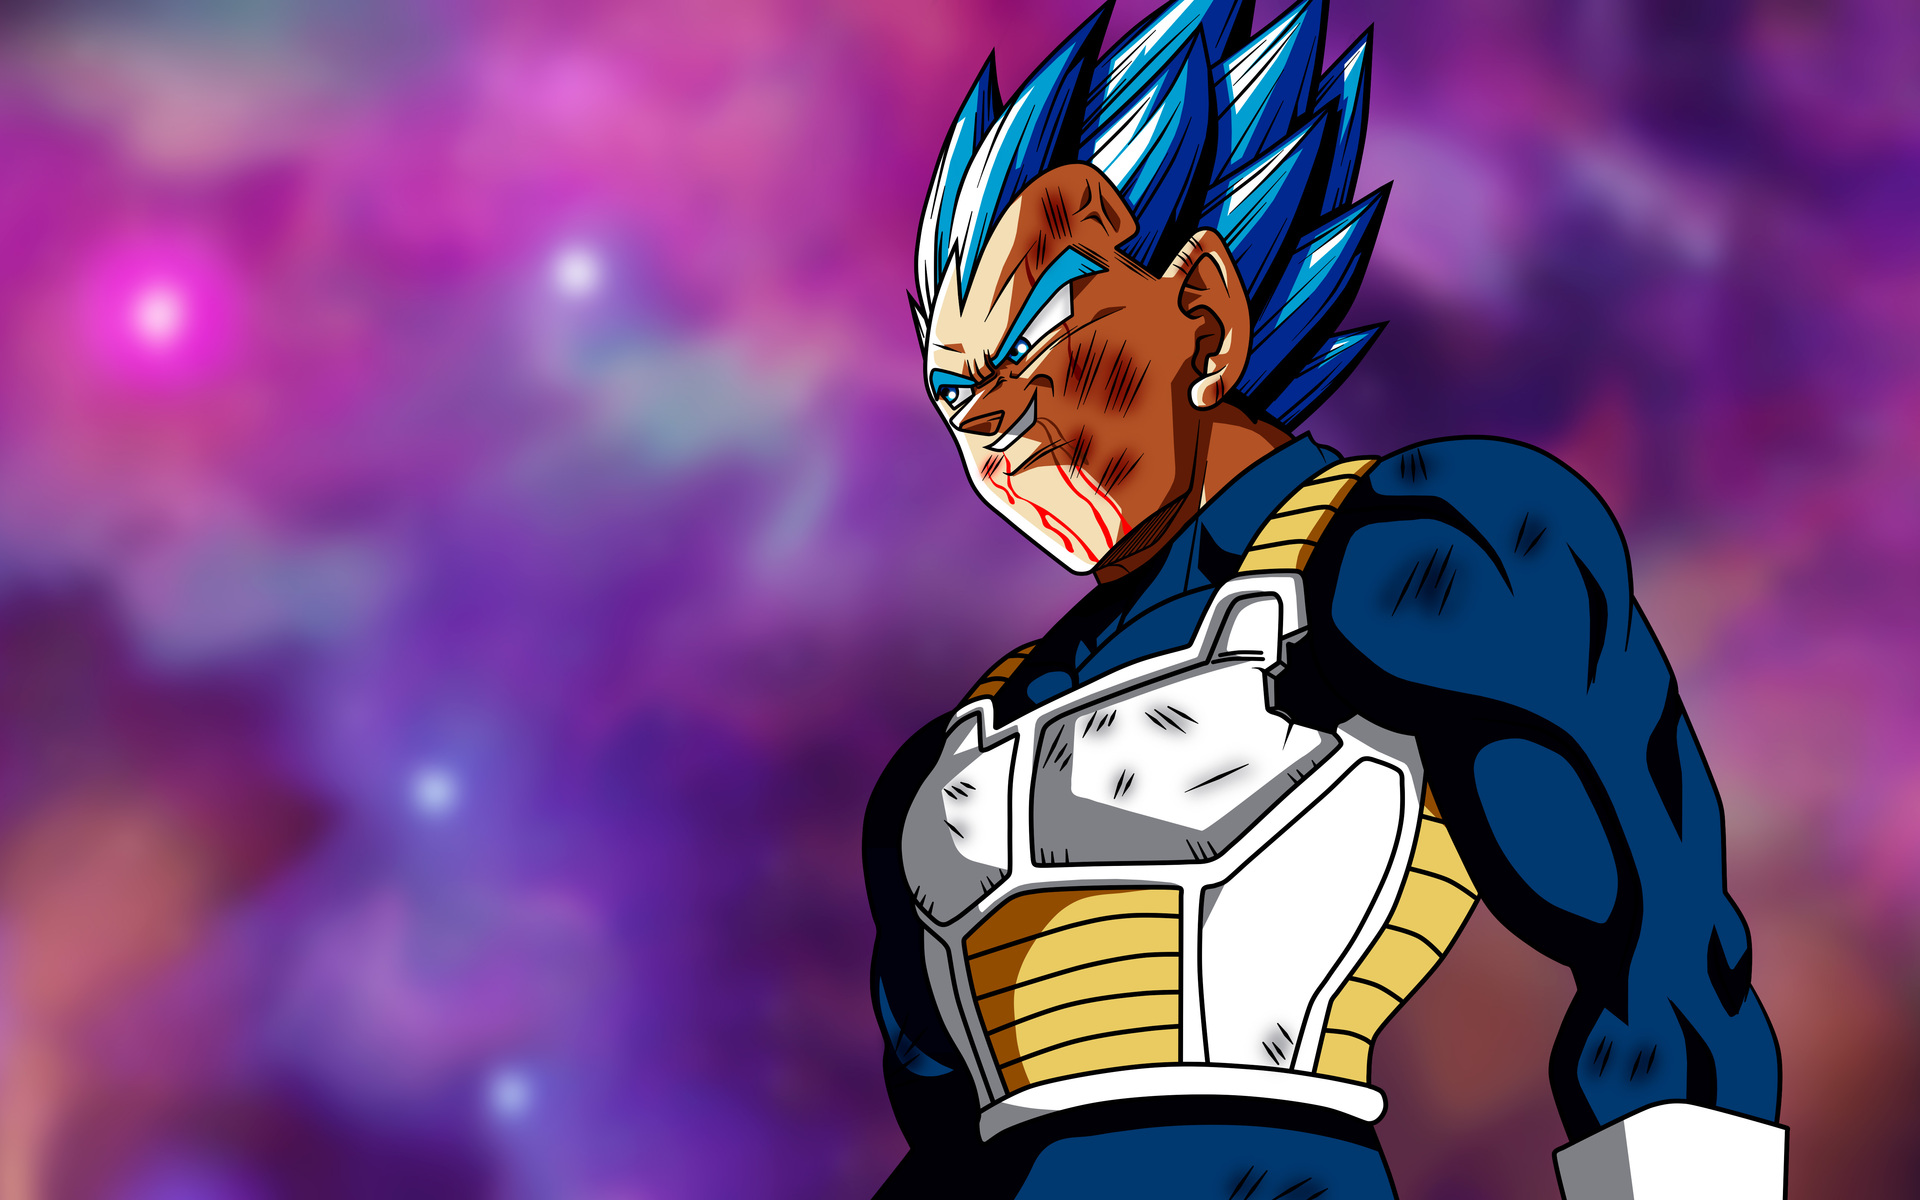 1920x1200 Dragon Ball Super Vegeta 1080p Resolution Hd 4k Wallpapers Images Backgrounds Photos And Pictures